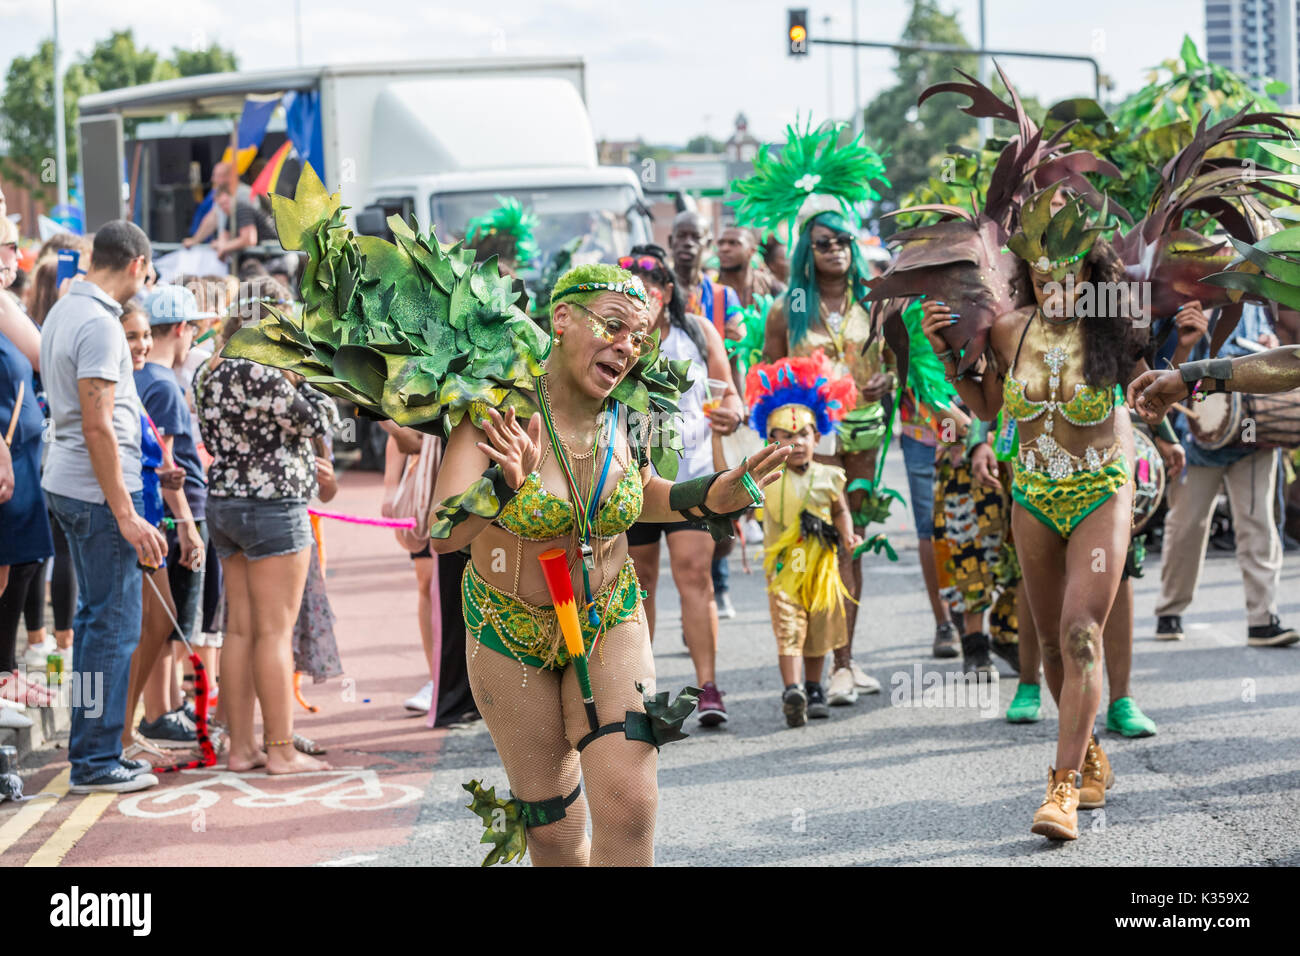 Caribbean Culture: West Indian Carnival Stock Photos & West Indian Carnival